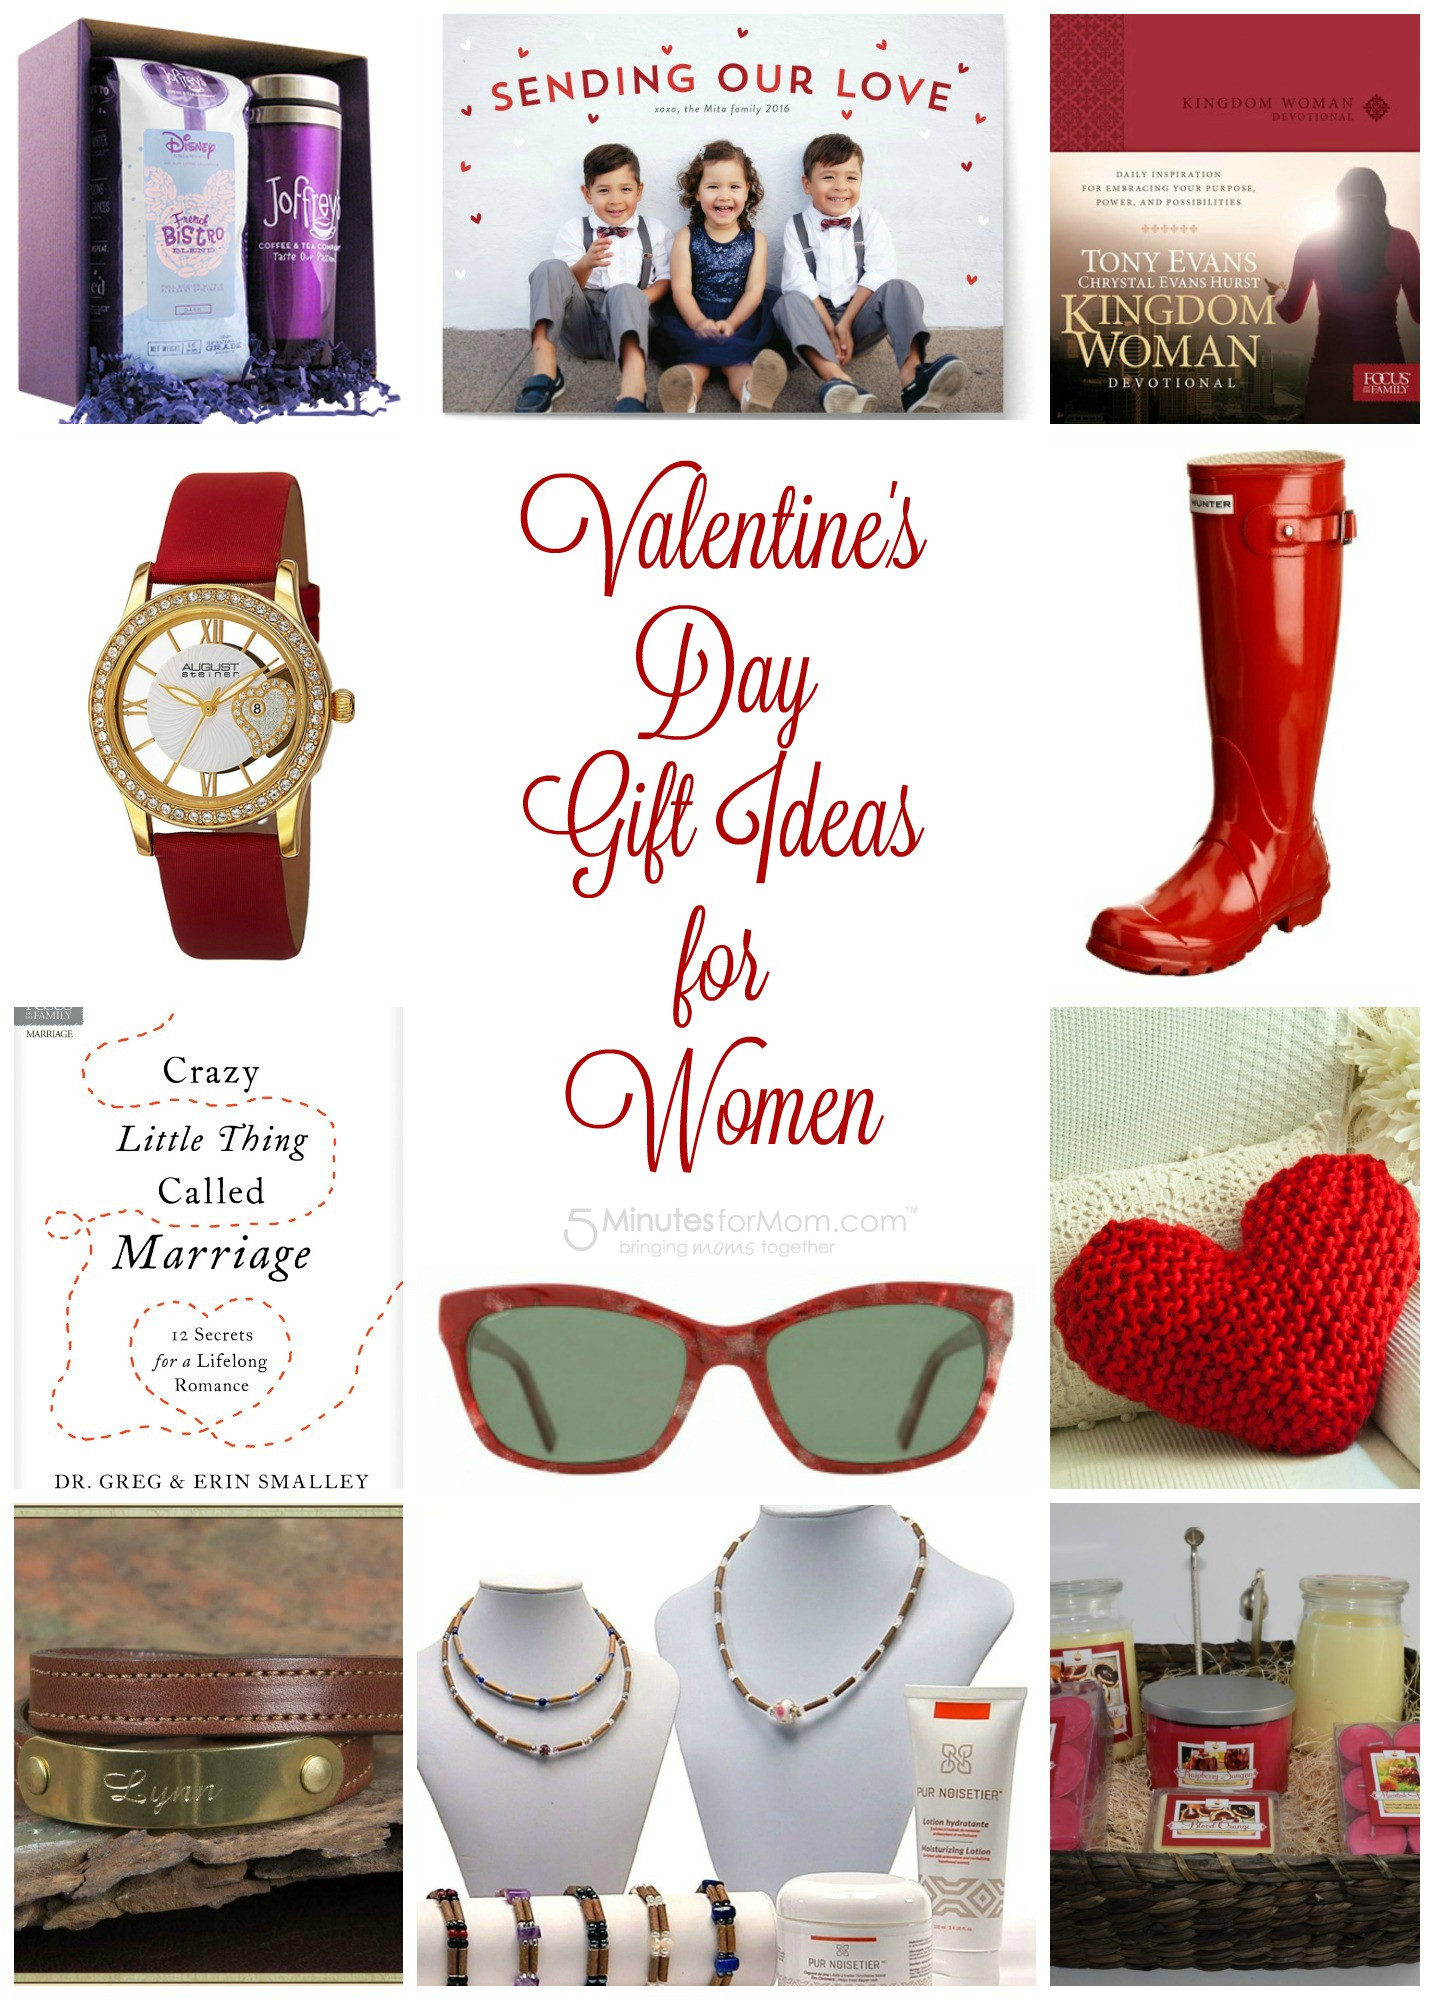 Valentines Day Gift Ideas  Valentine s Day Gift Guide for Women Plus $100 Amazon